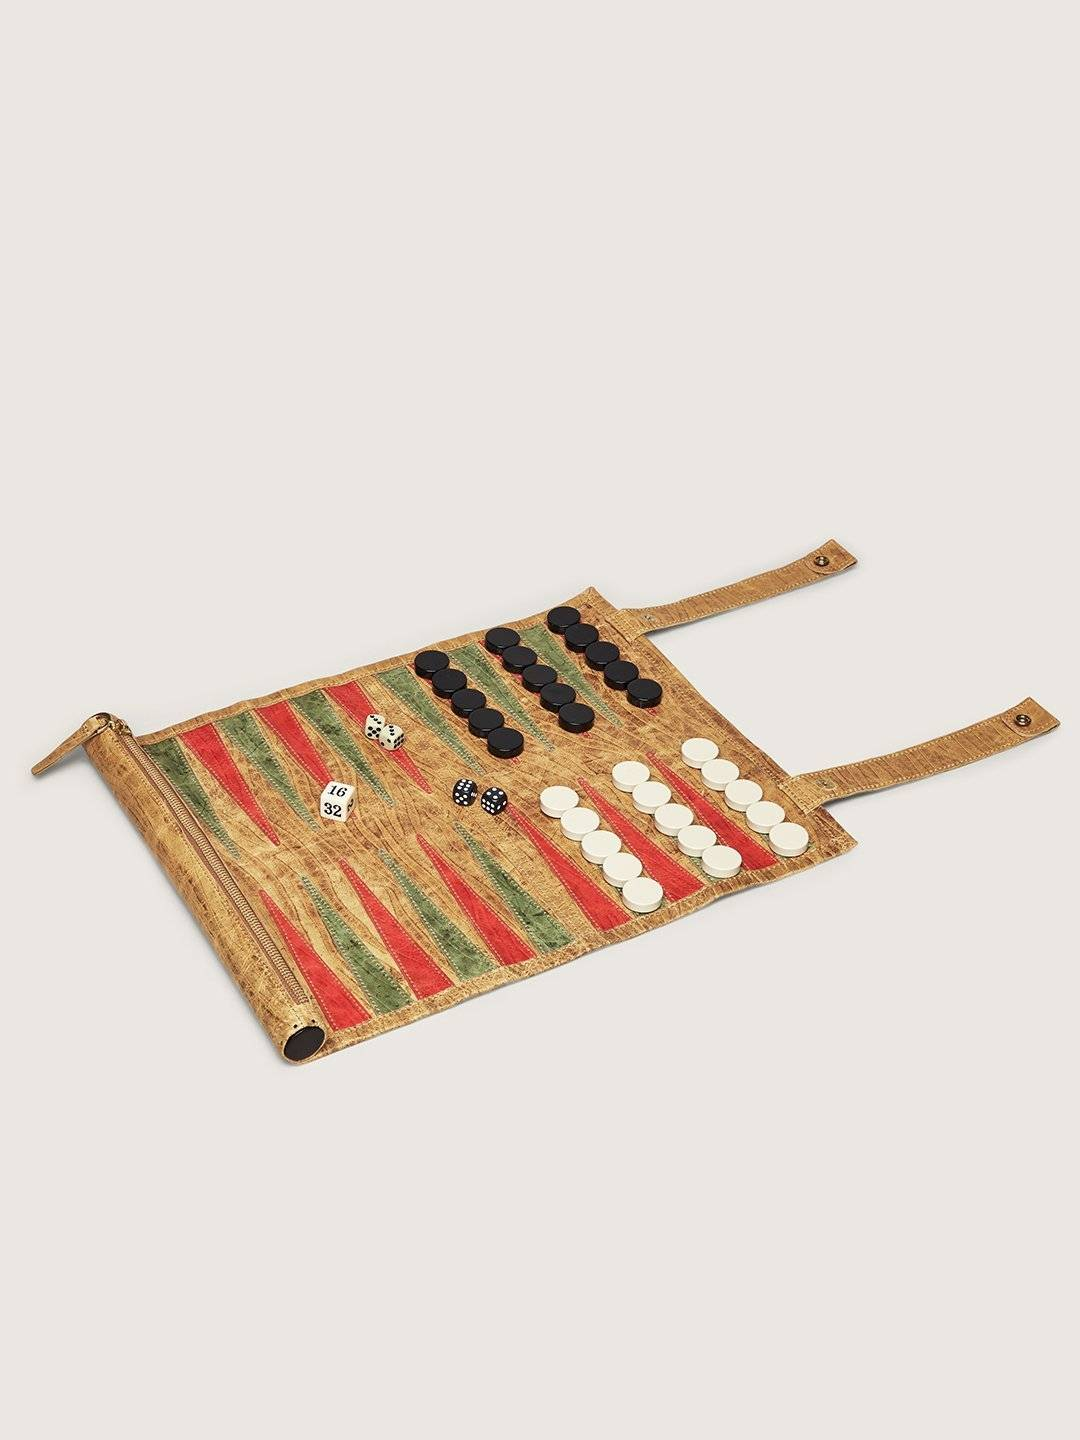 okapi travel backgammon board